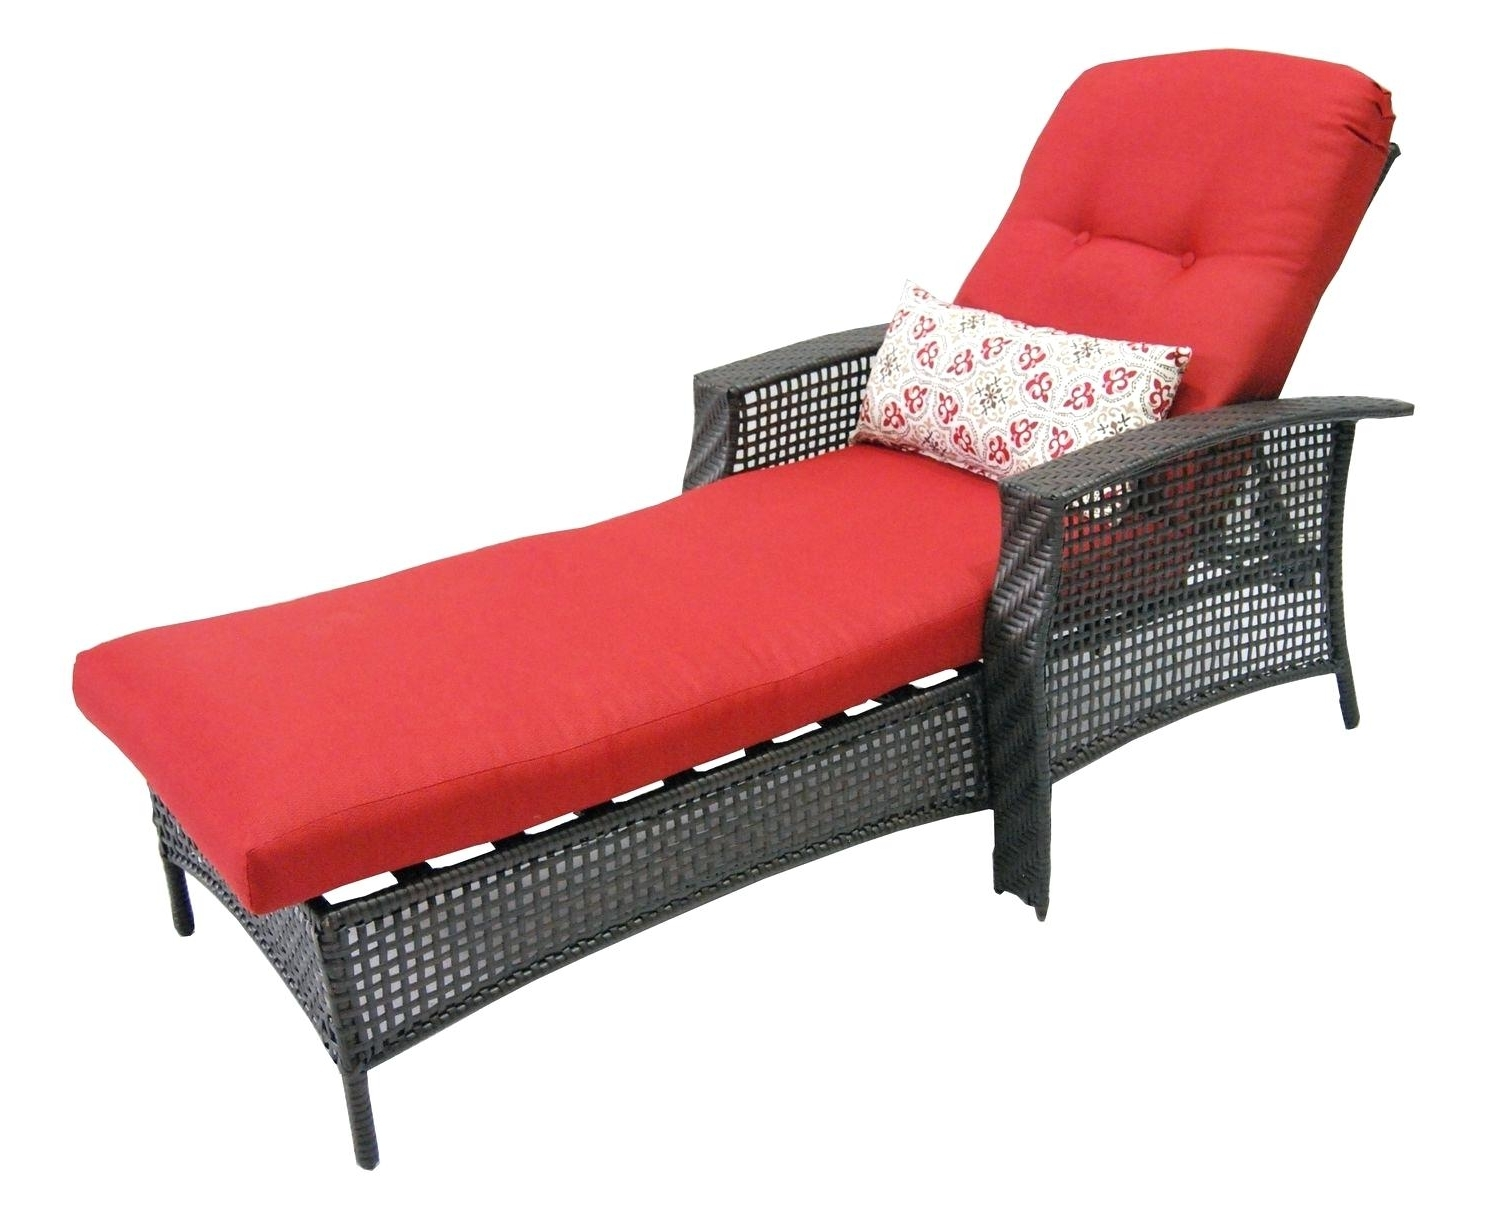 Walmart Chaise Lounge Cushions Double Cushion Outdoor Patio With Regard To Most Current Walmart Chaise Lounge Cushions (View 4 of 15)